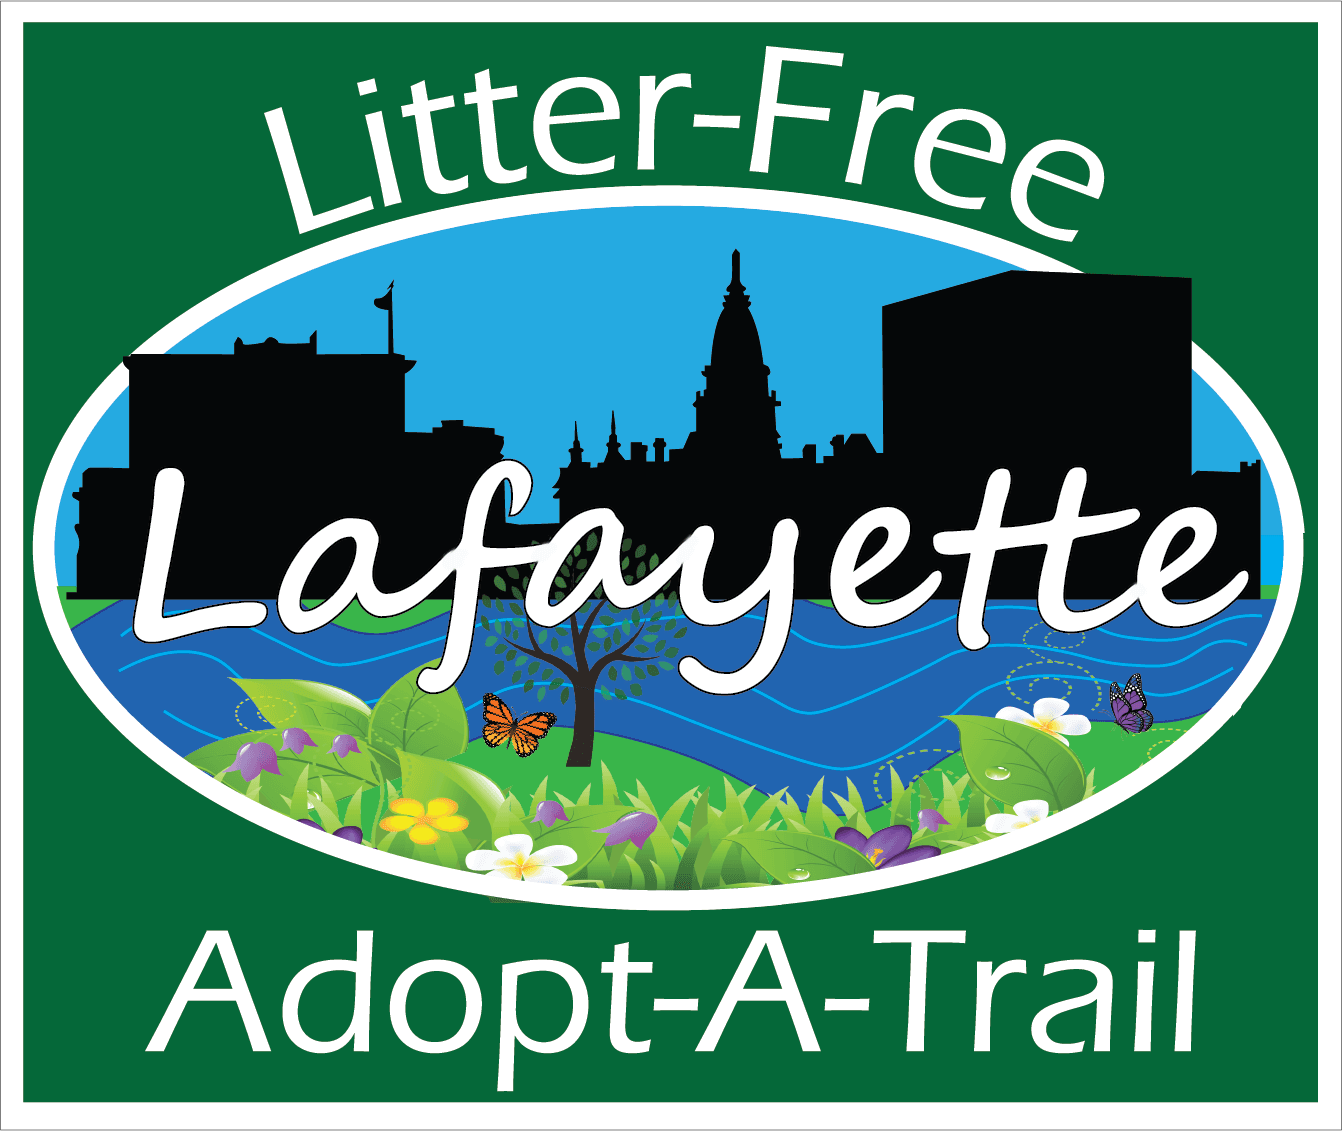 Litter Free Lafayette Adopt-A-Trail sign - Eras Medium ITC